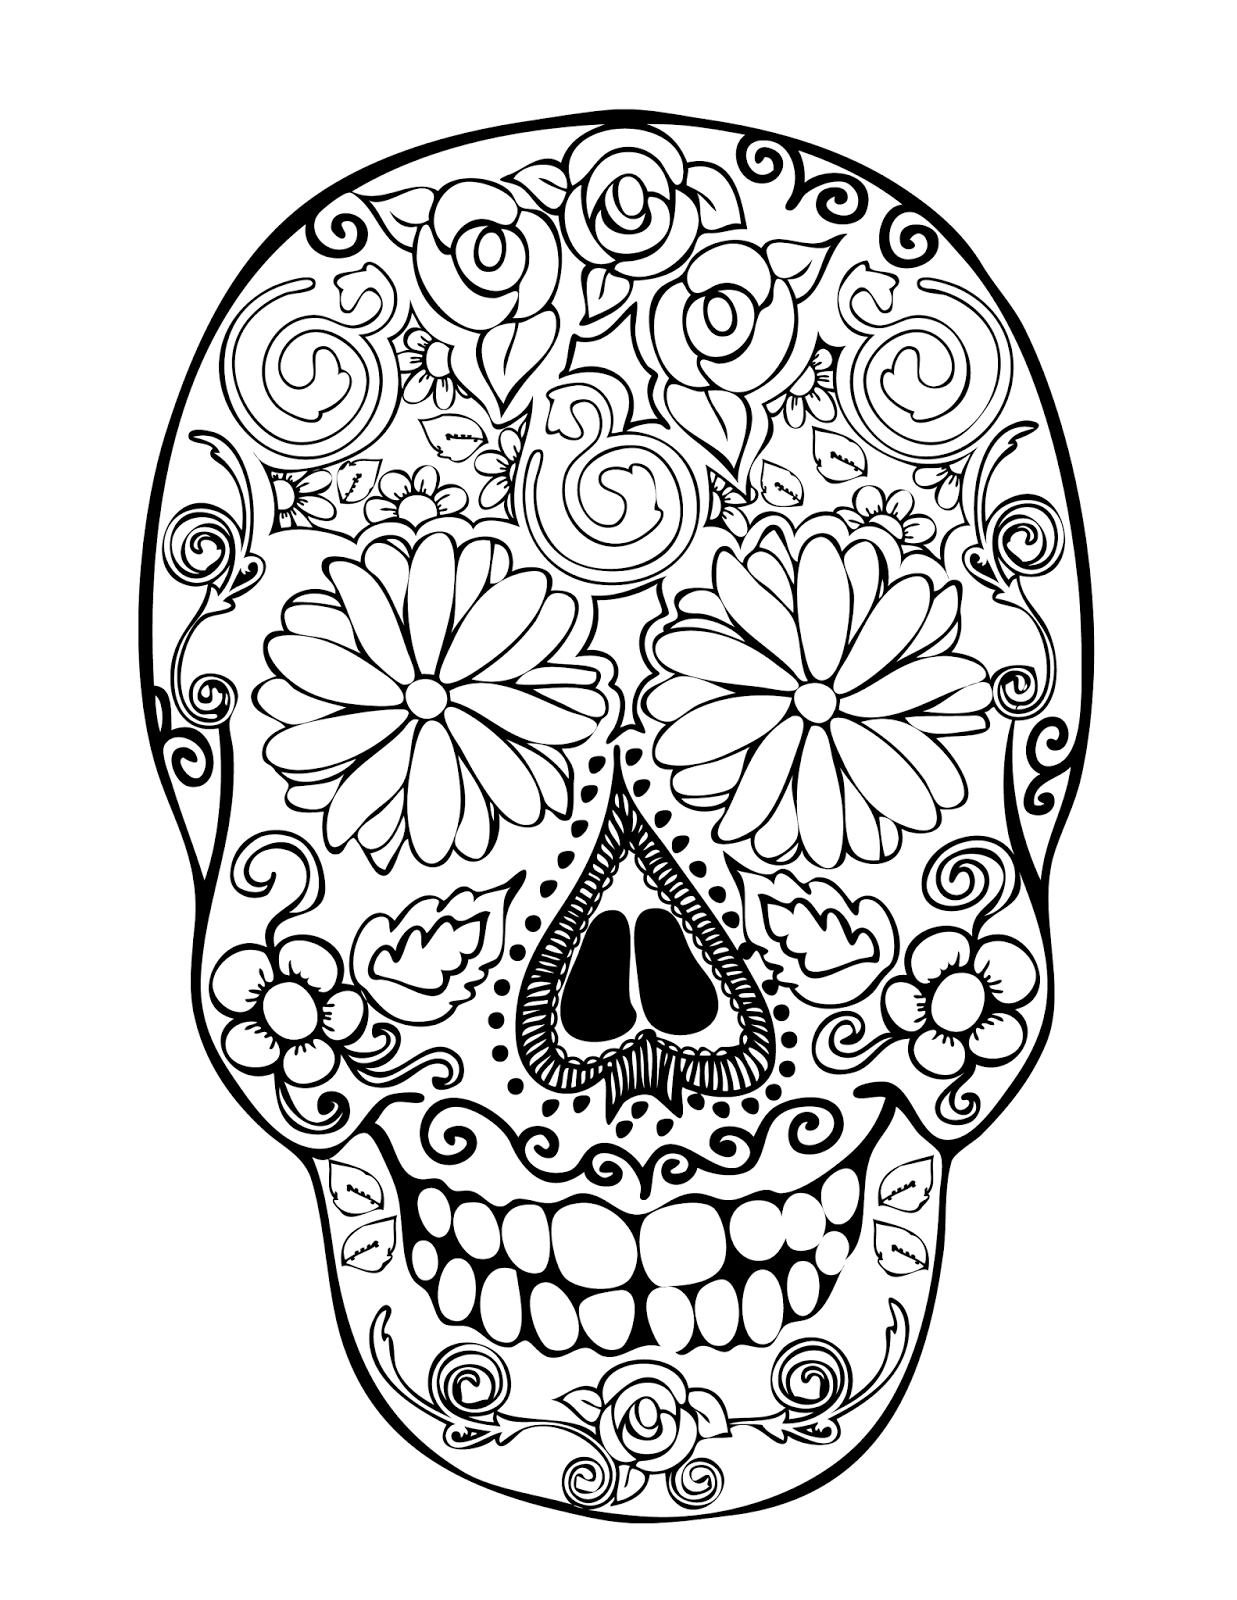 sugar skull coloring pages | printable coloring pages | skull ... - Sugar Skull Coloring Pages Print